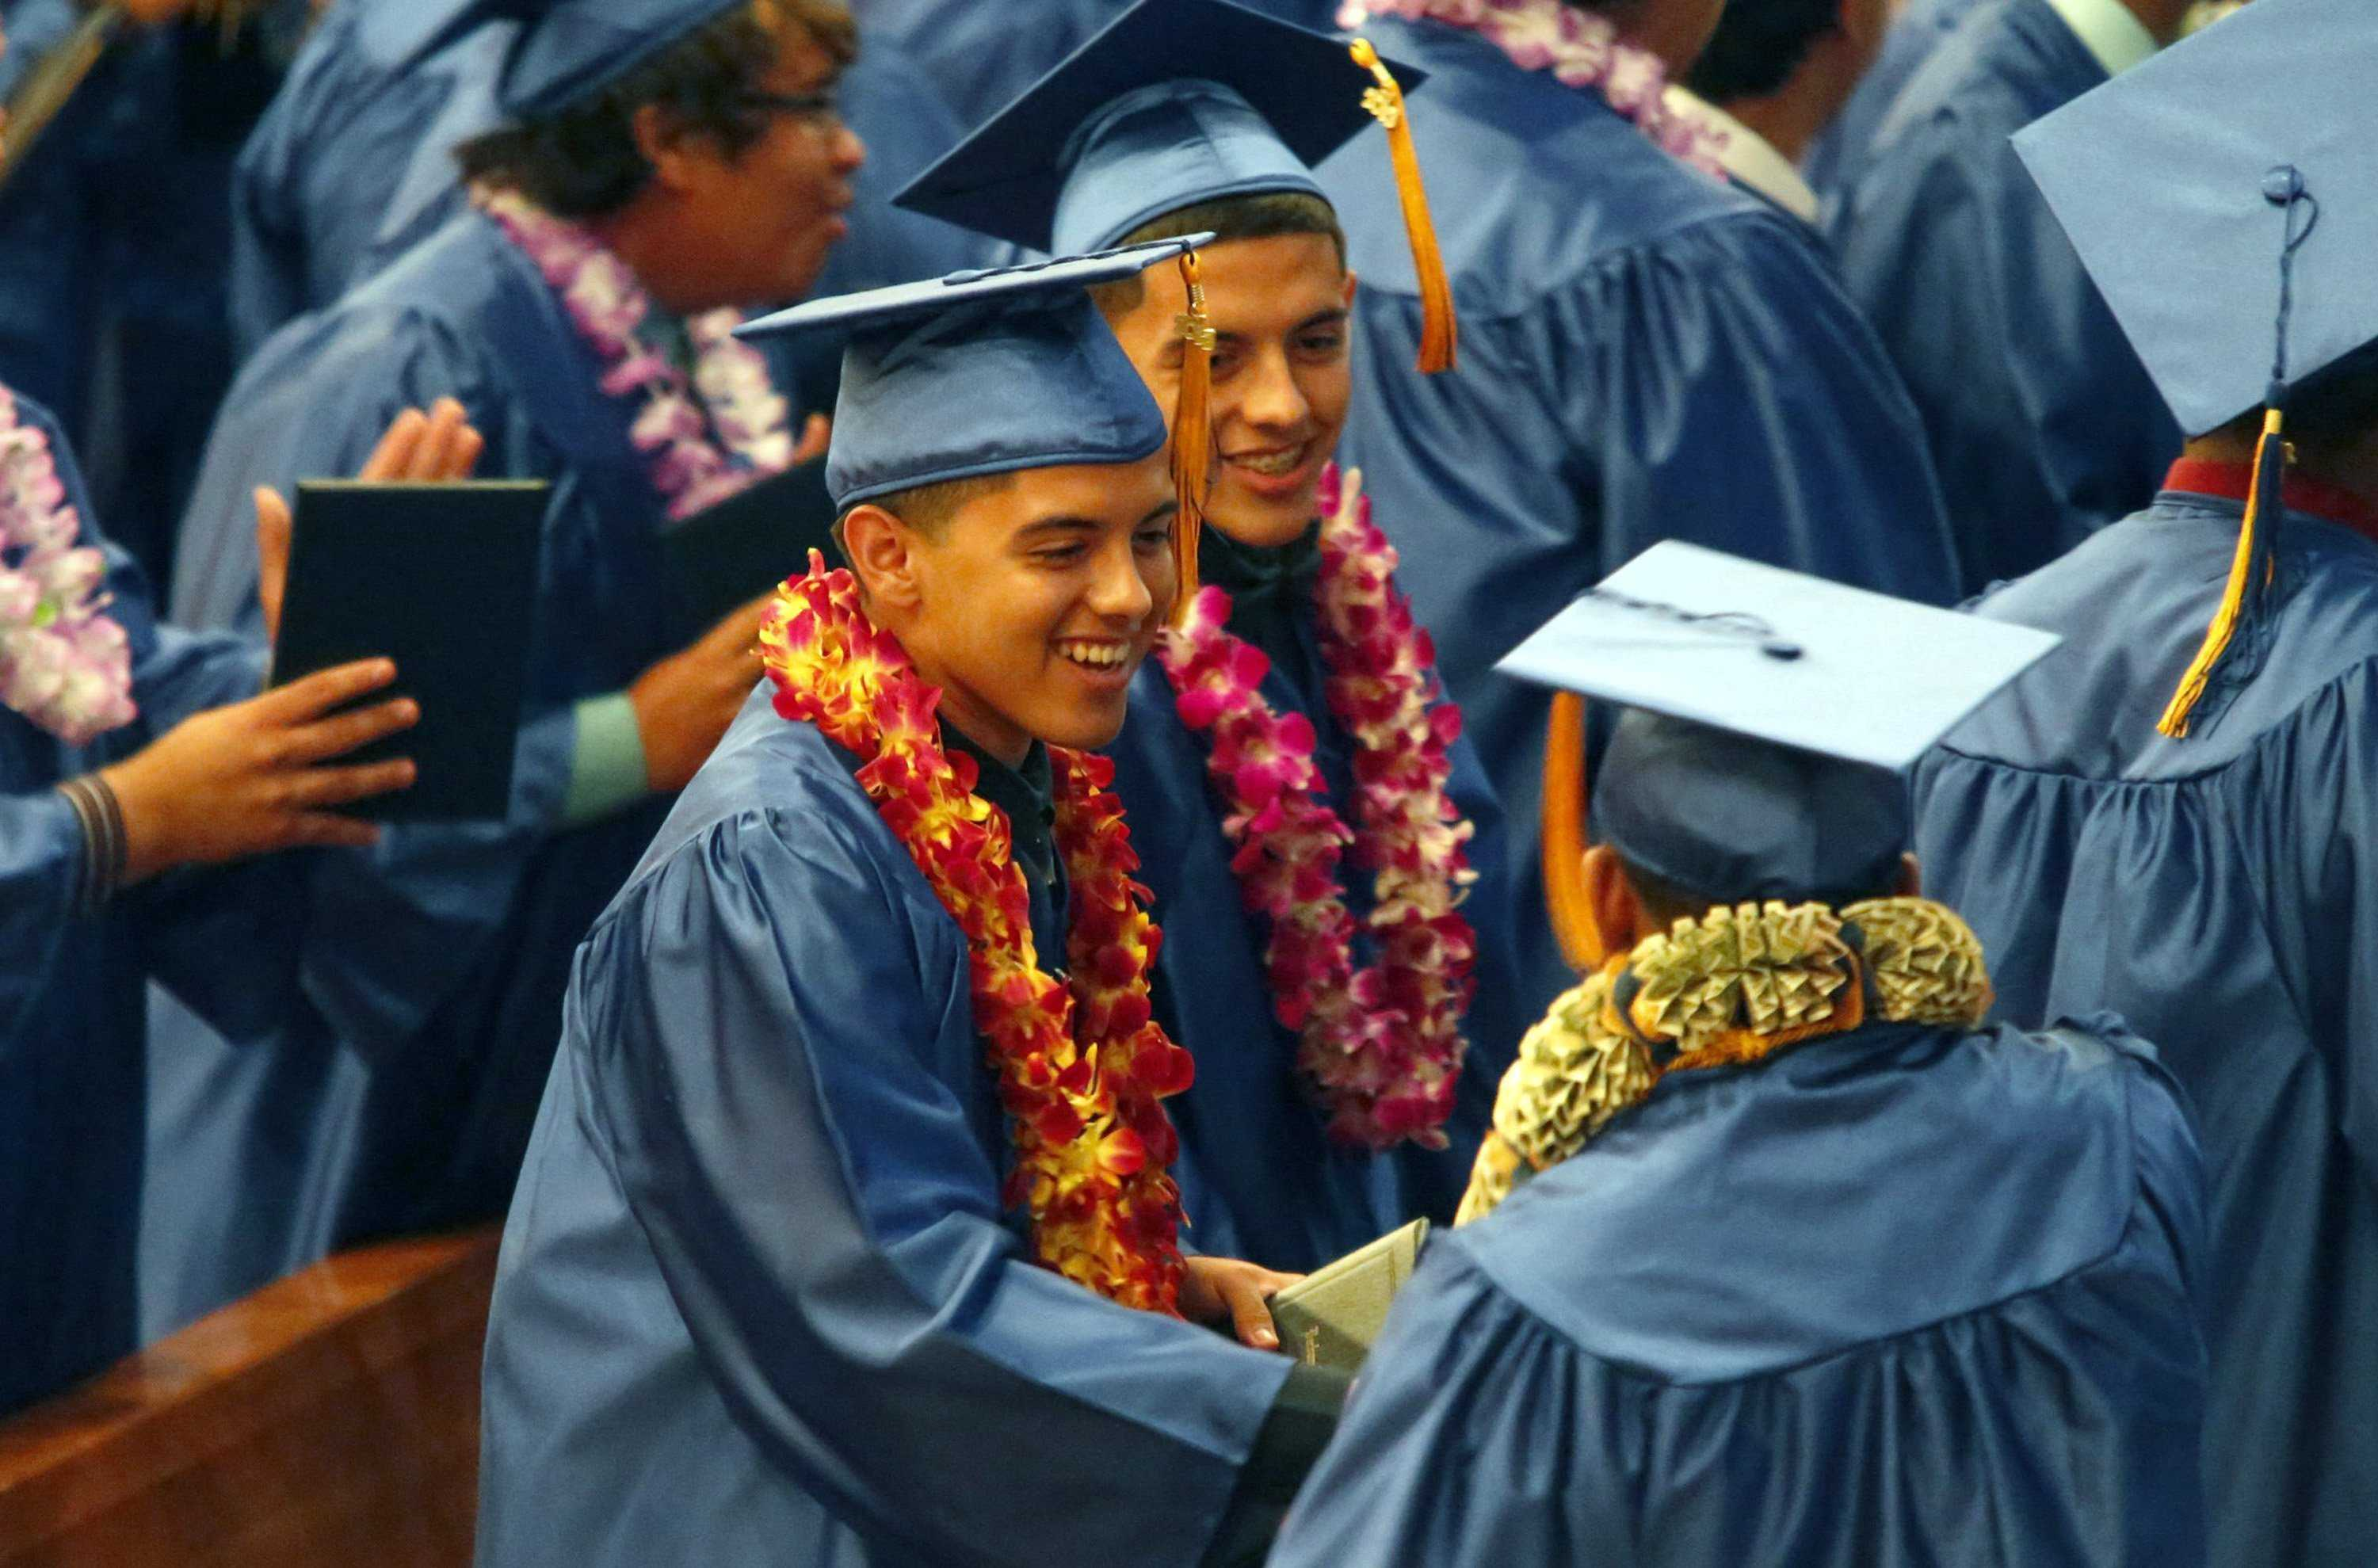 Twin brothers Robert (left) and Ricardo Placensia shake hands with fellow Verbum Dei High School graduates during a ceremony at the Cathedral of Our Lady of Angels in Los Angeles, June 6, 2013. (Don Bartletti/Los Angeles Times/MCT)